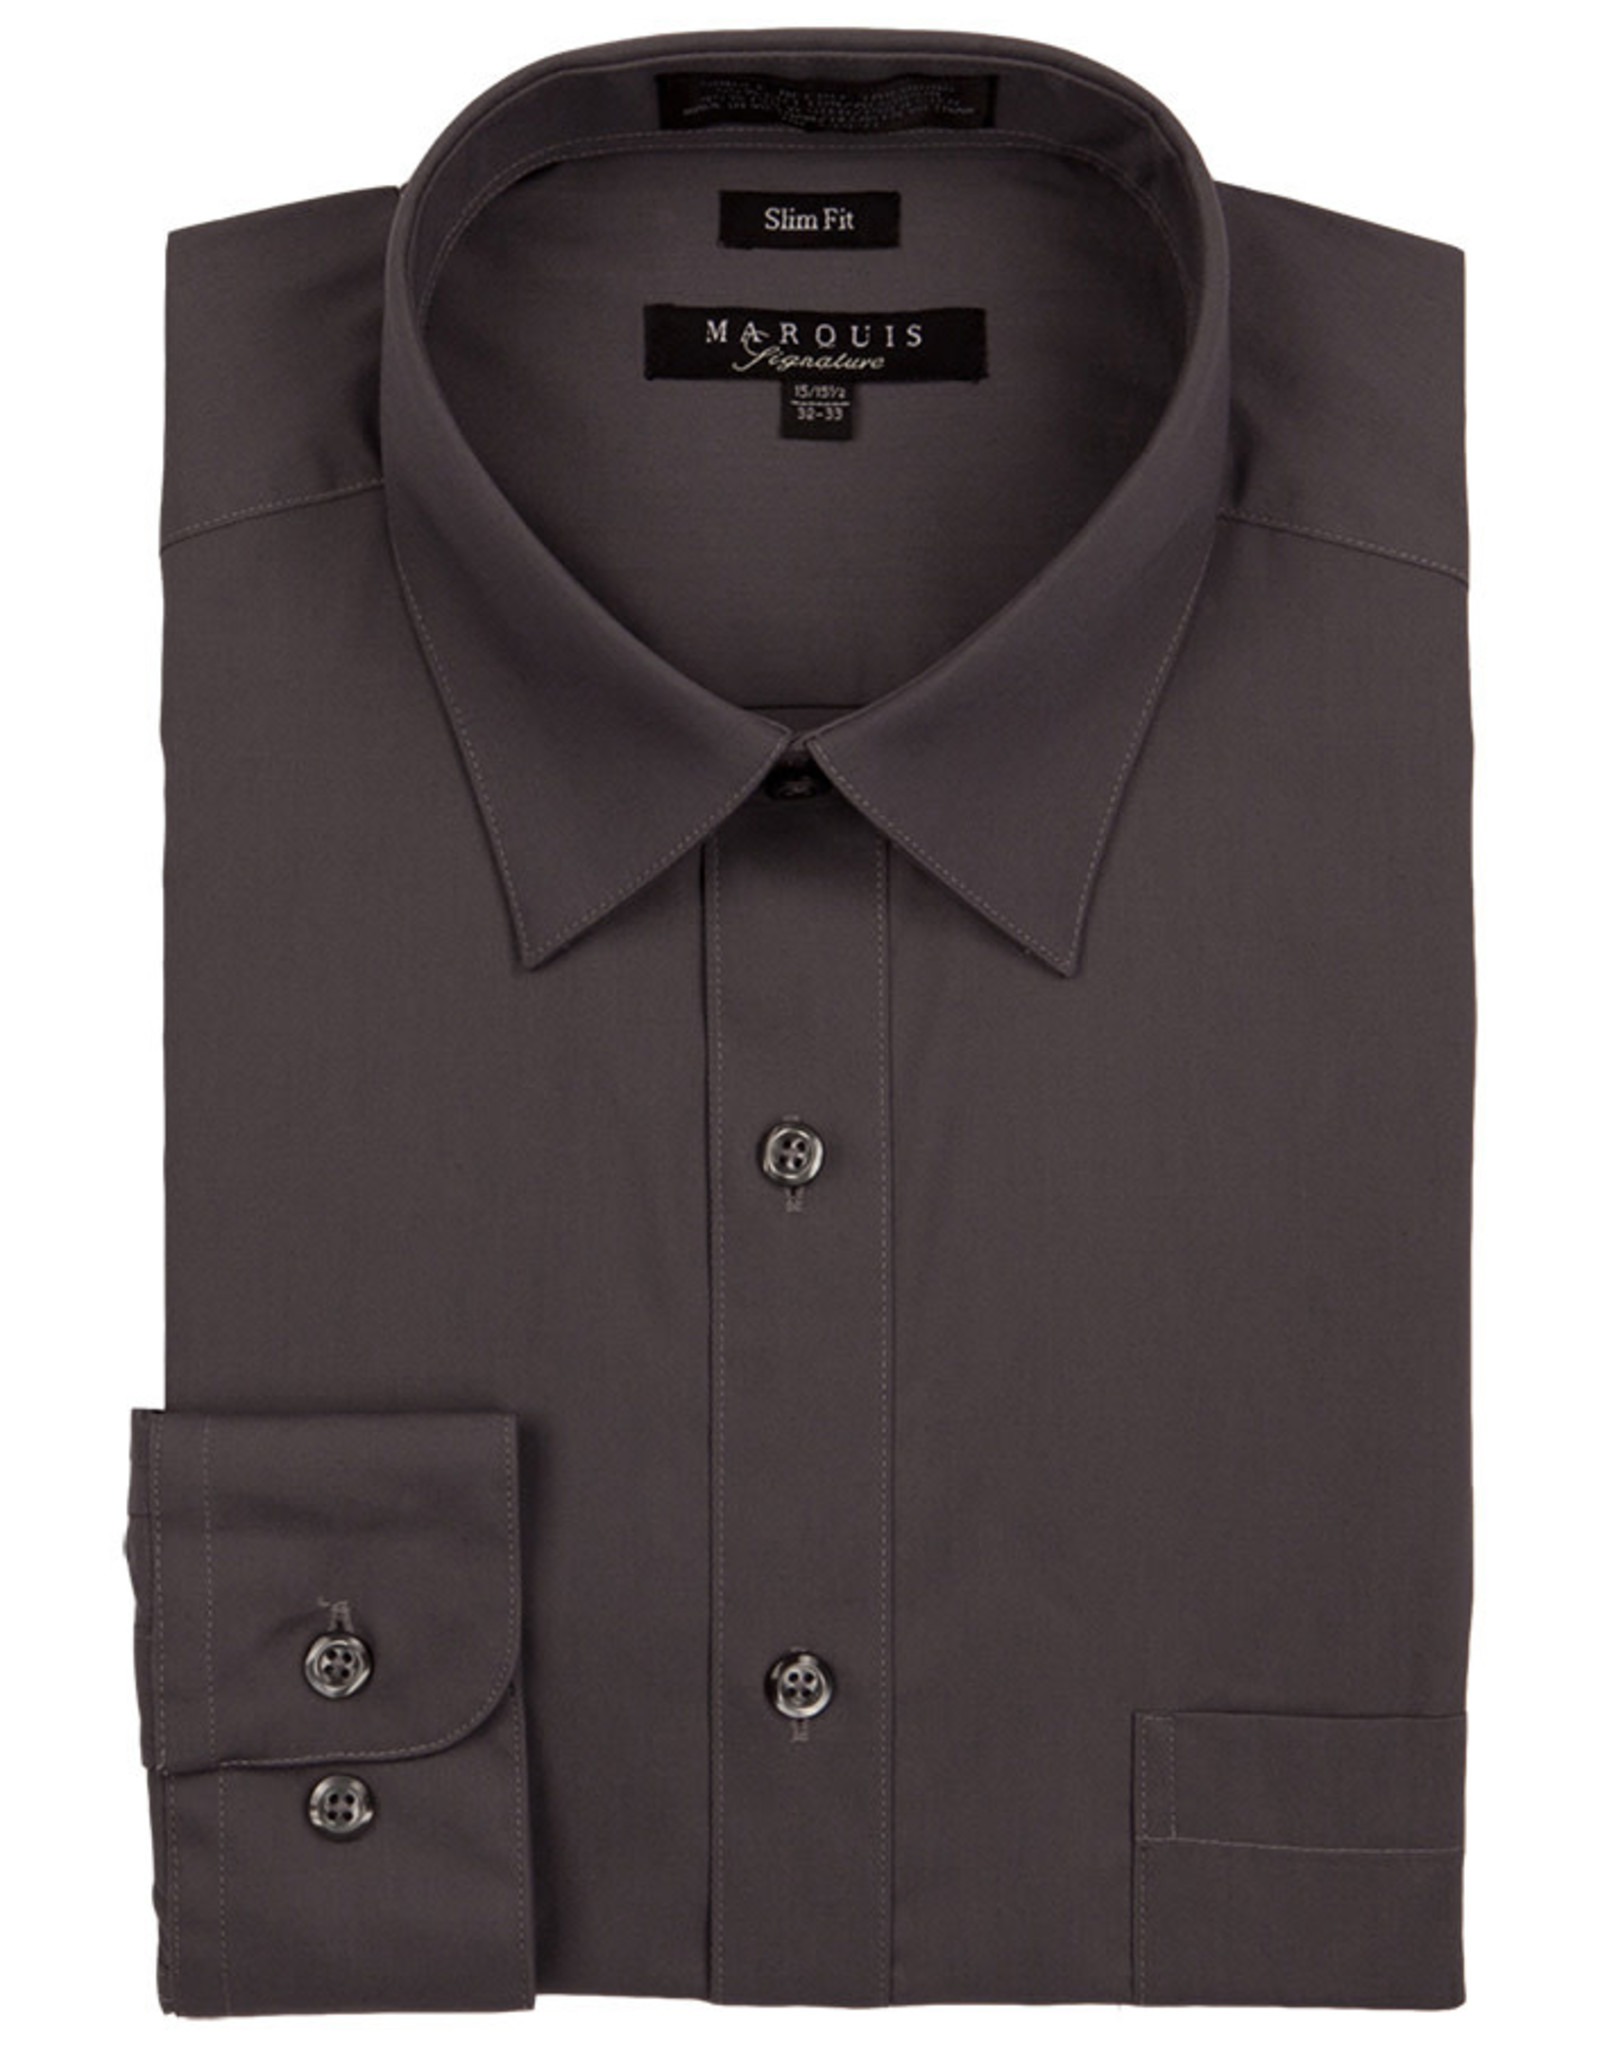 Marquis Dress Shirt MarQuis Slim Fit Charcoal